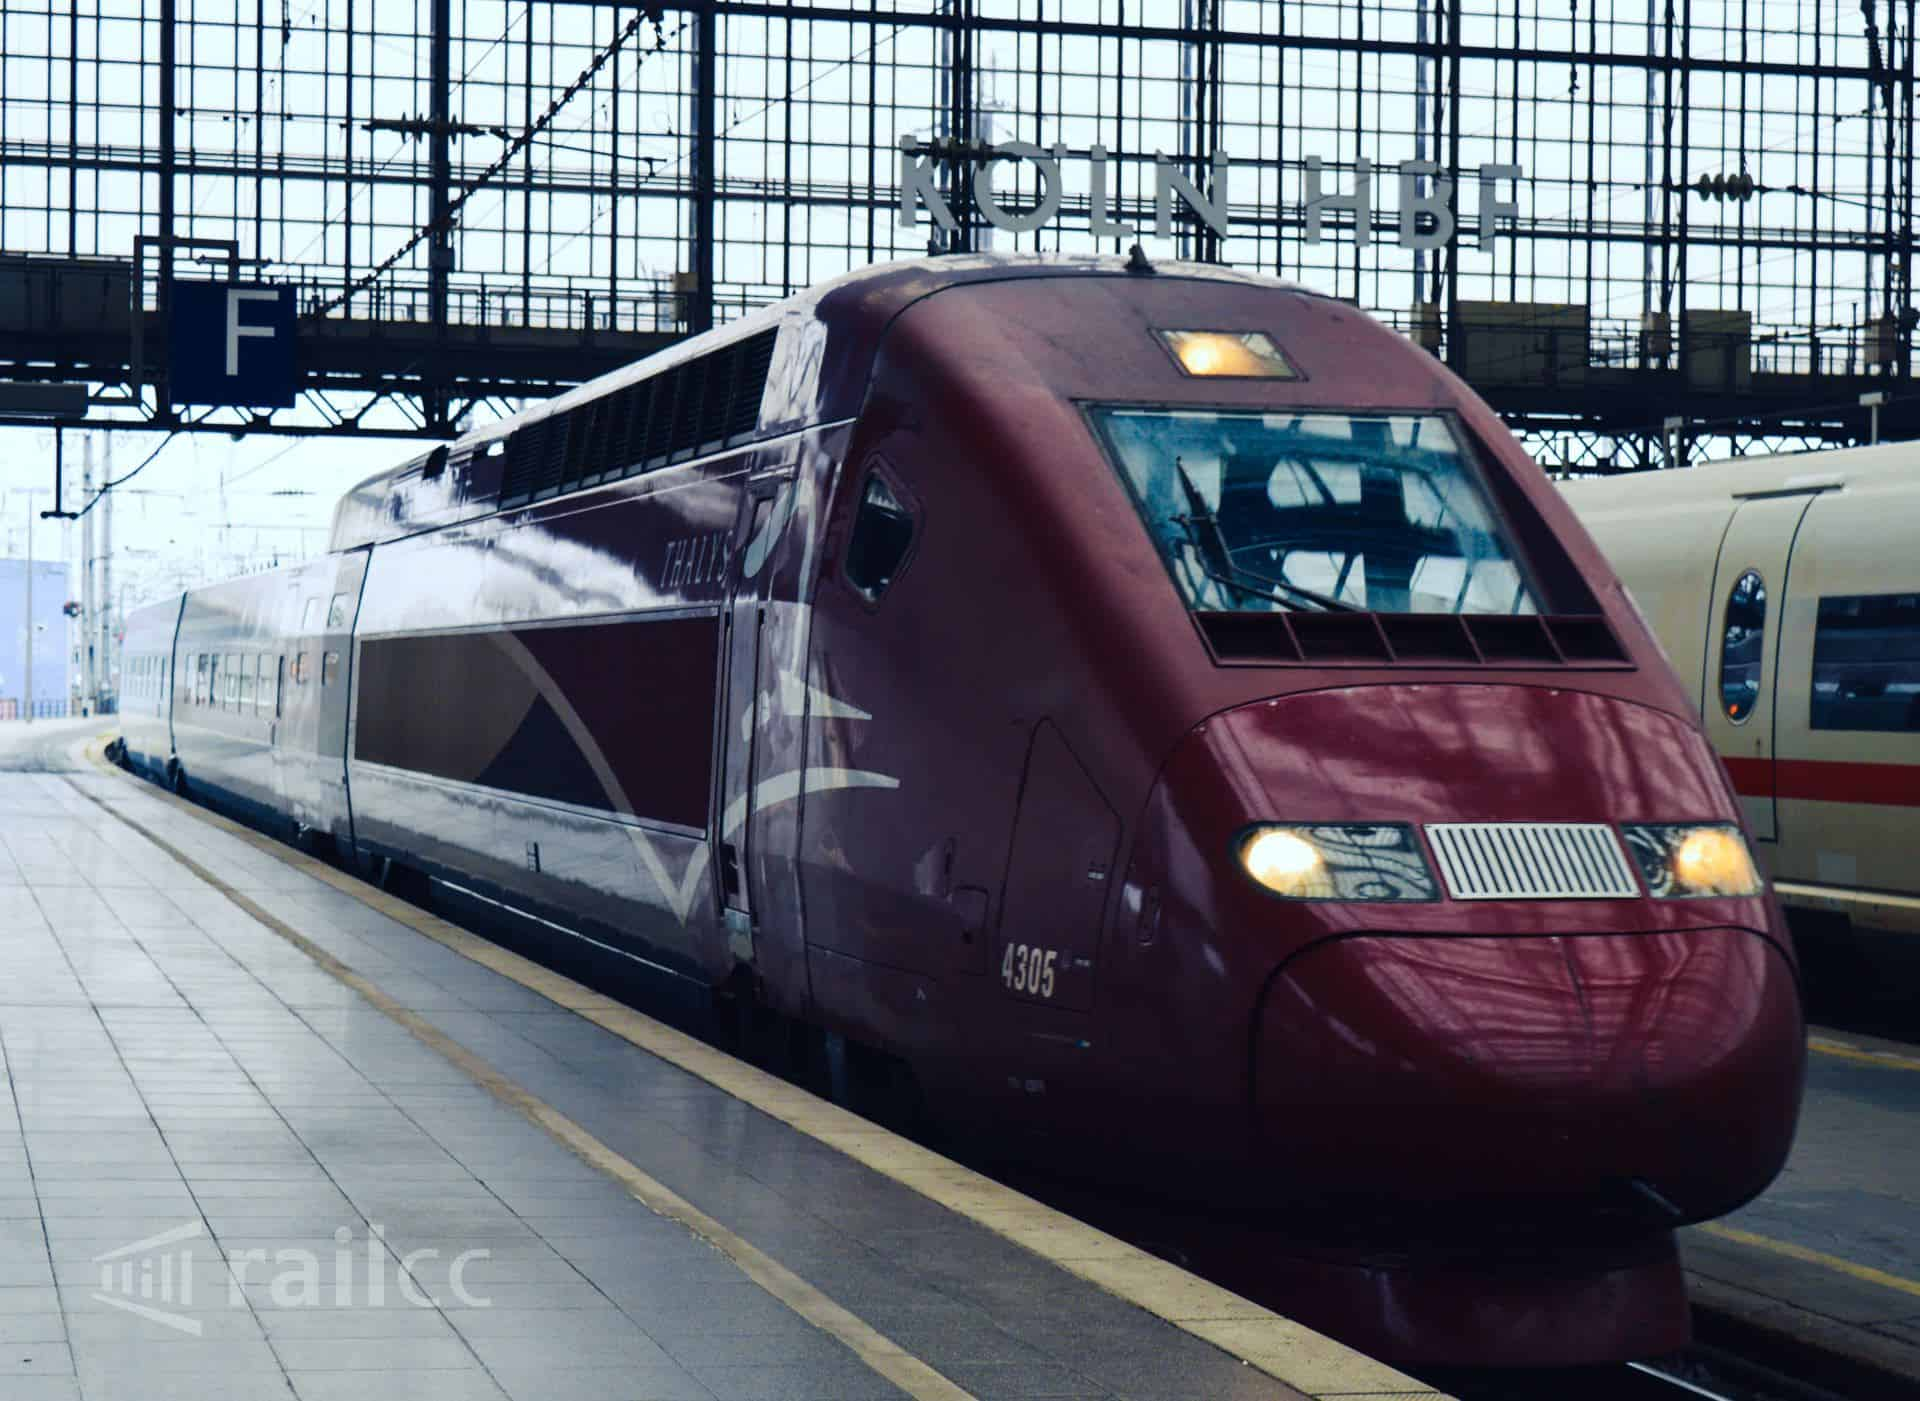 Thalys train entering Cologne main station